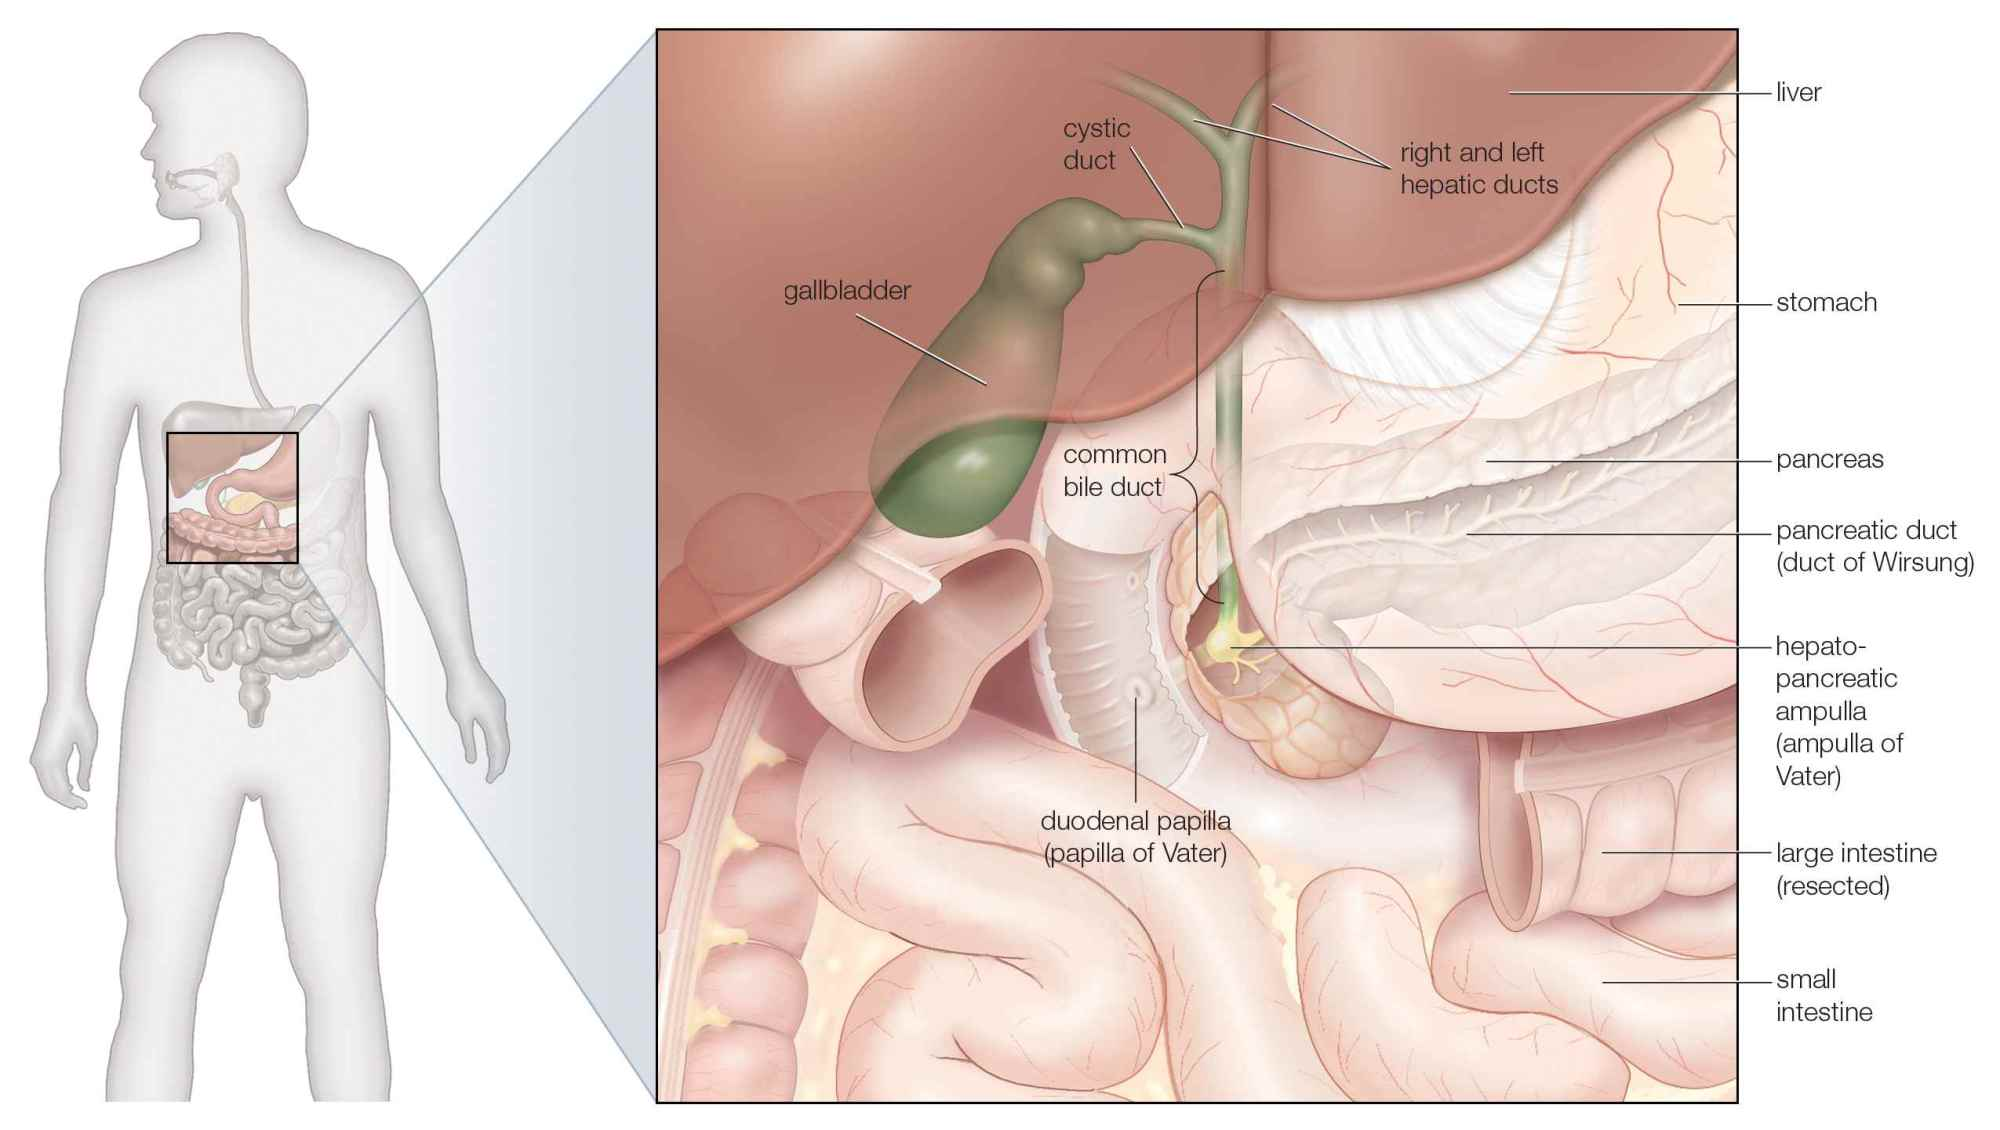 hight resolution of the gallbladder and bile ducts in situ